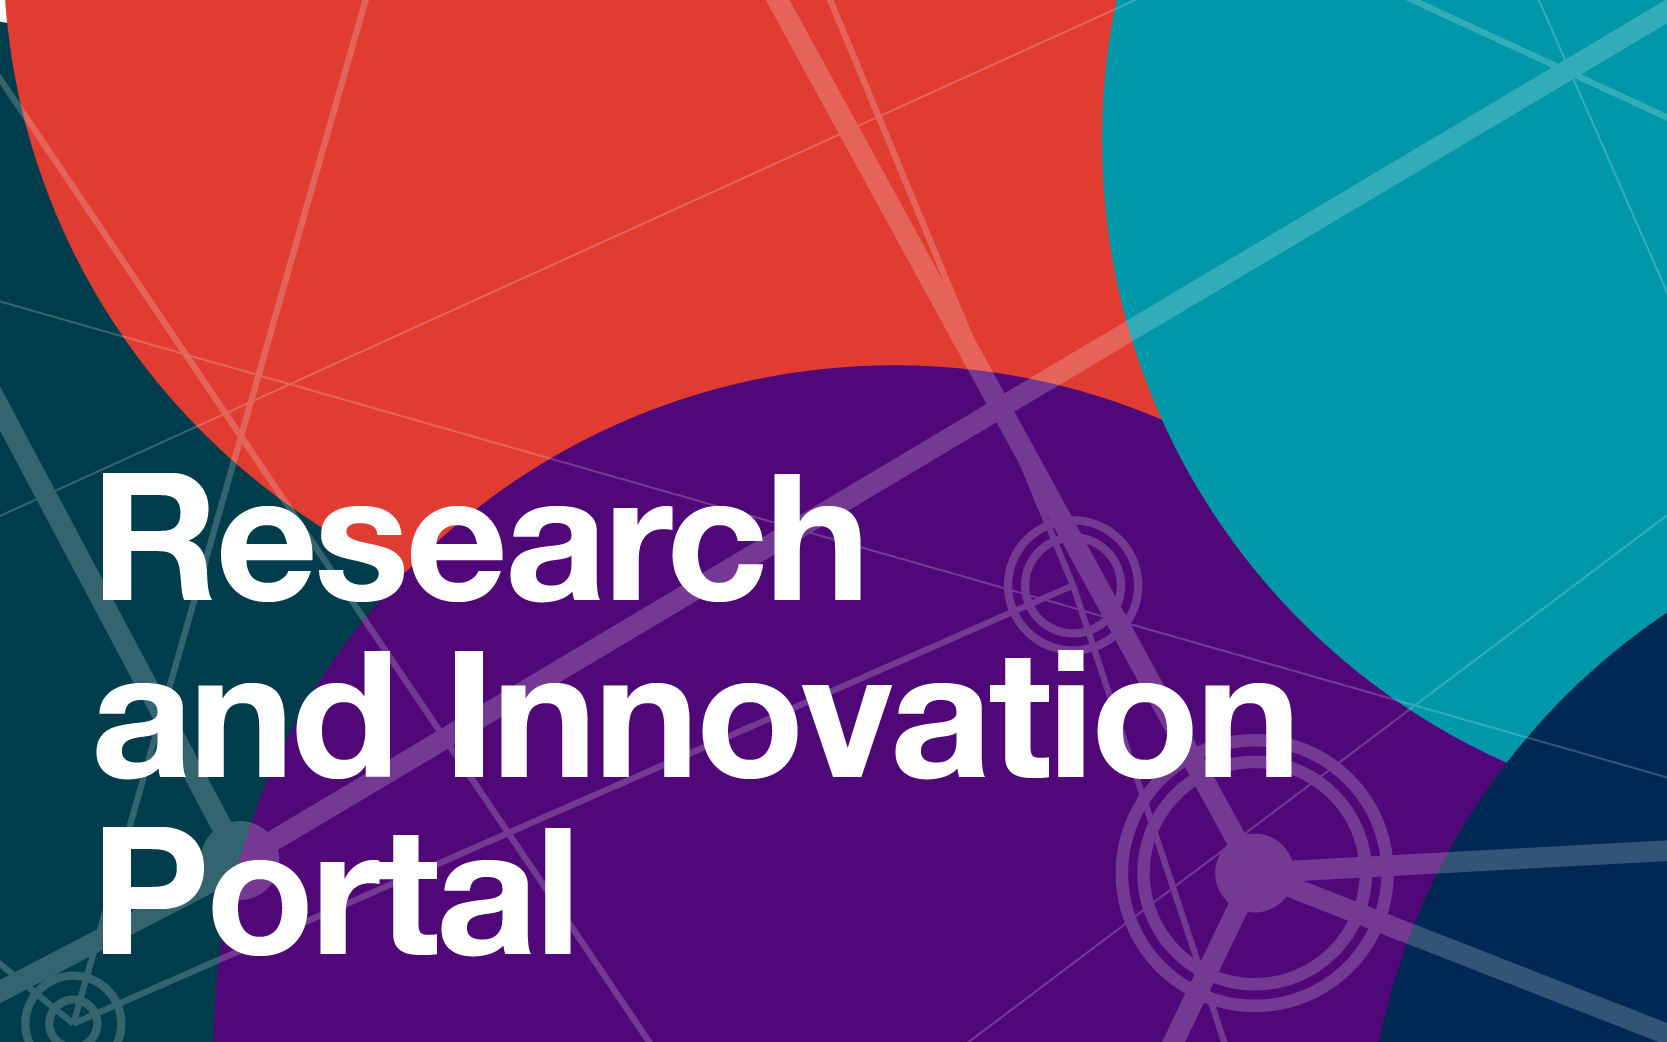 An image with the words Research and Innovation Portal